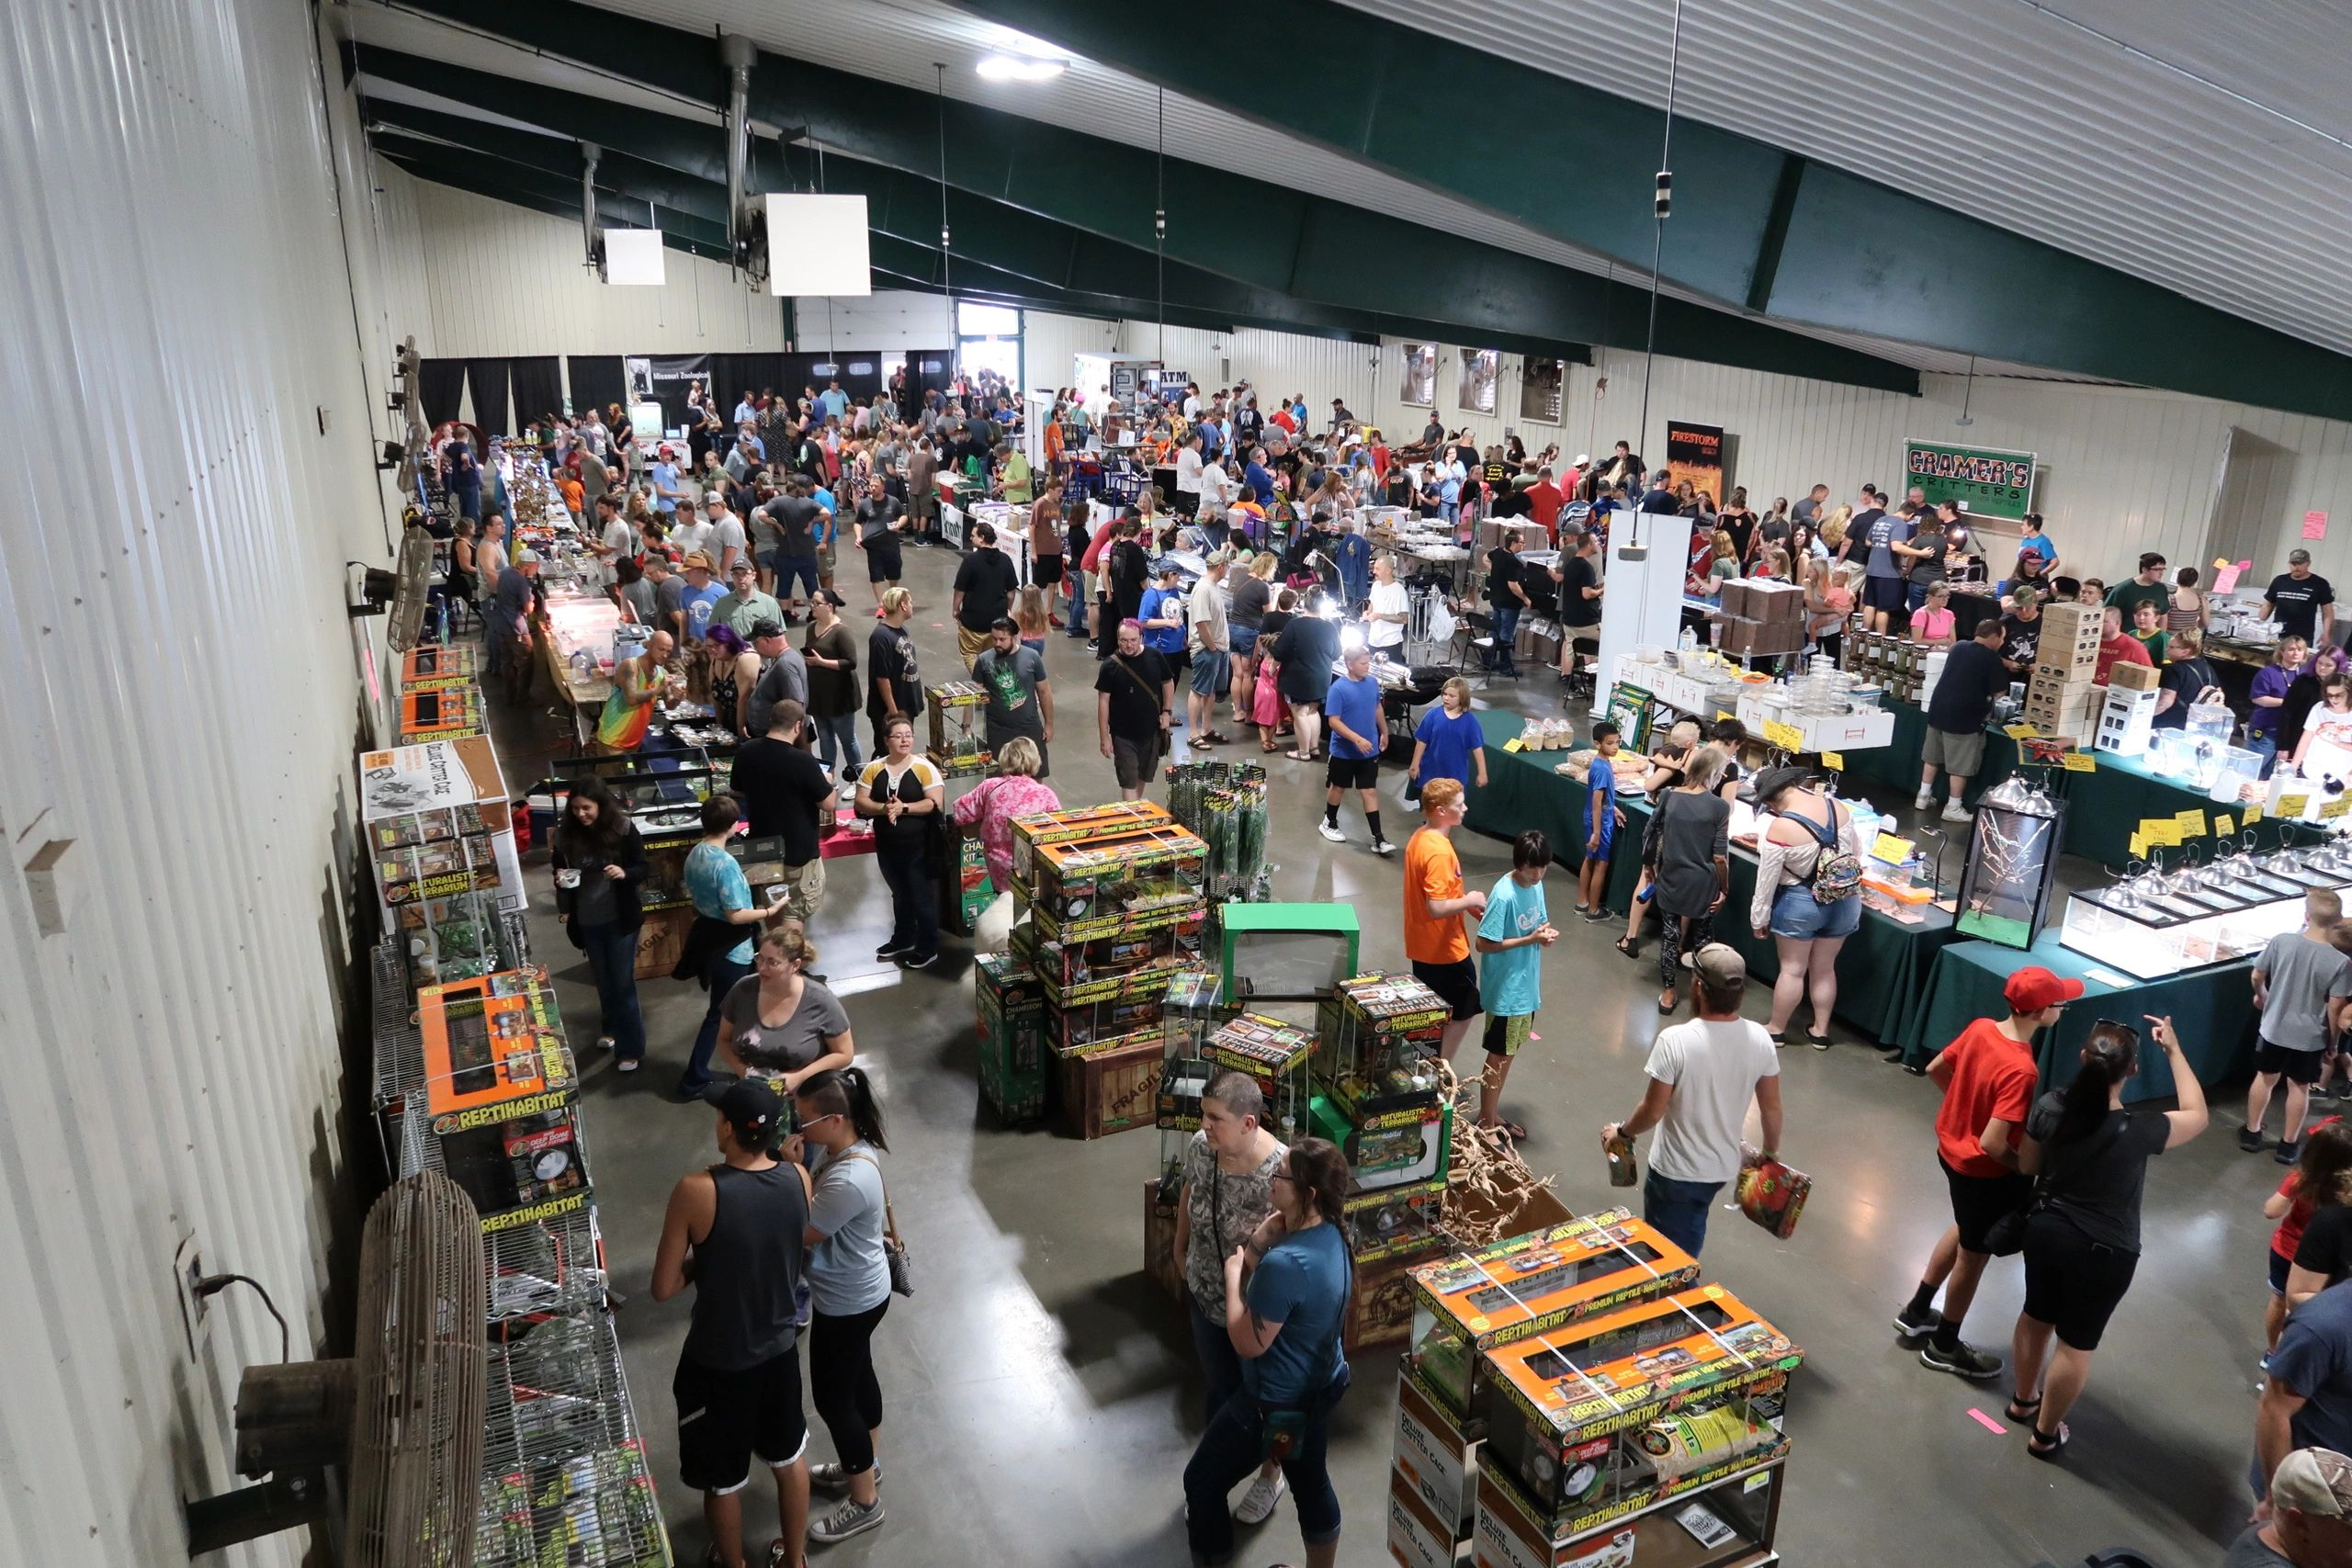 2021 Paducah Summer Reptile and Exotics Show